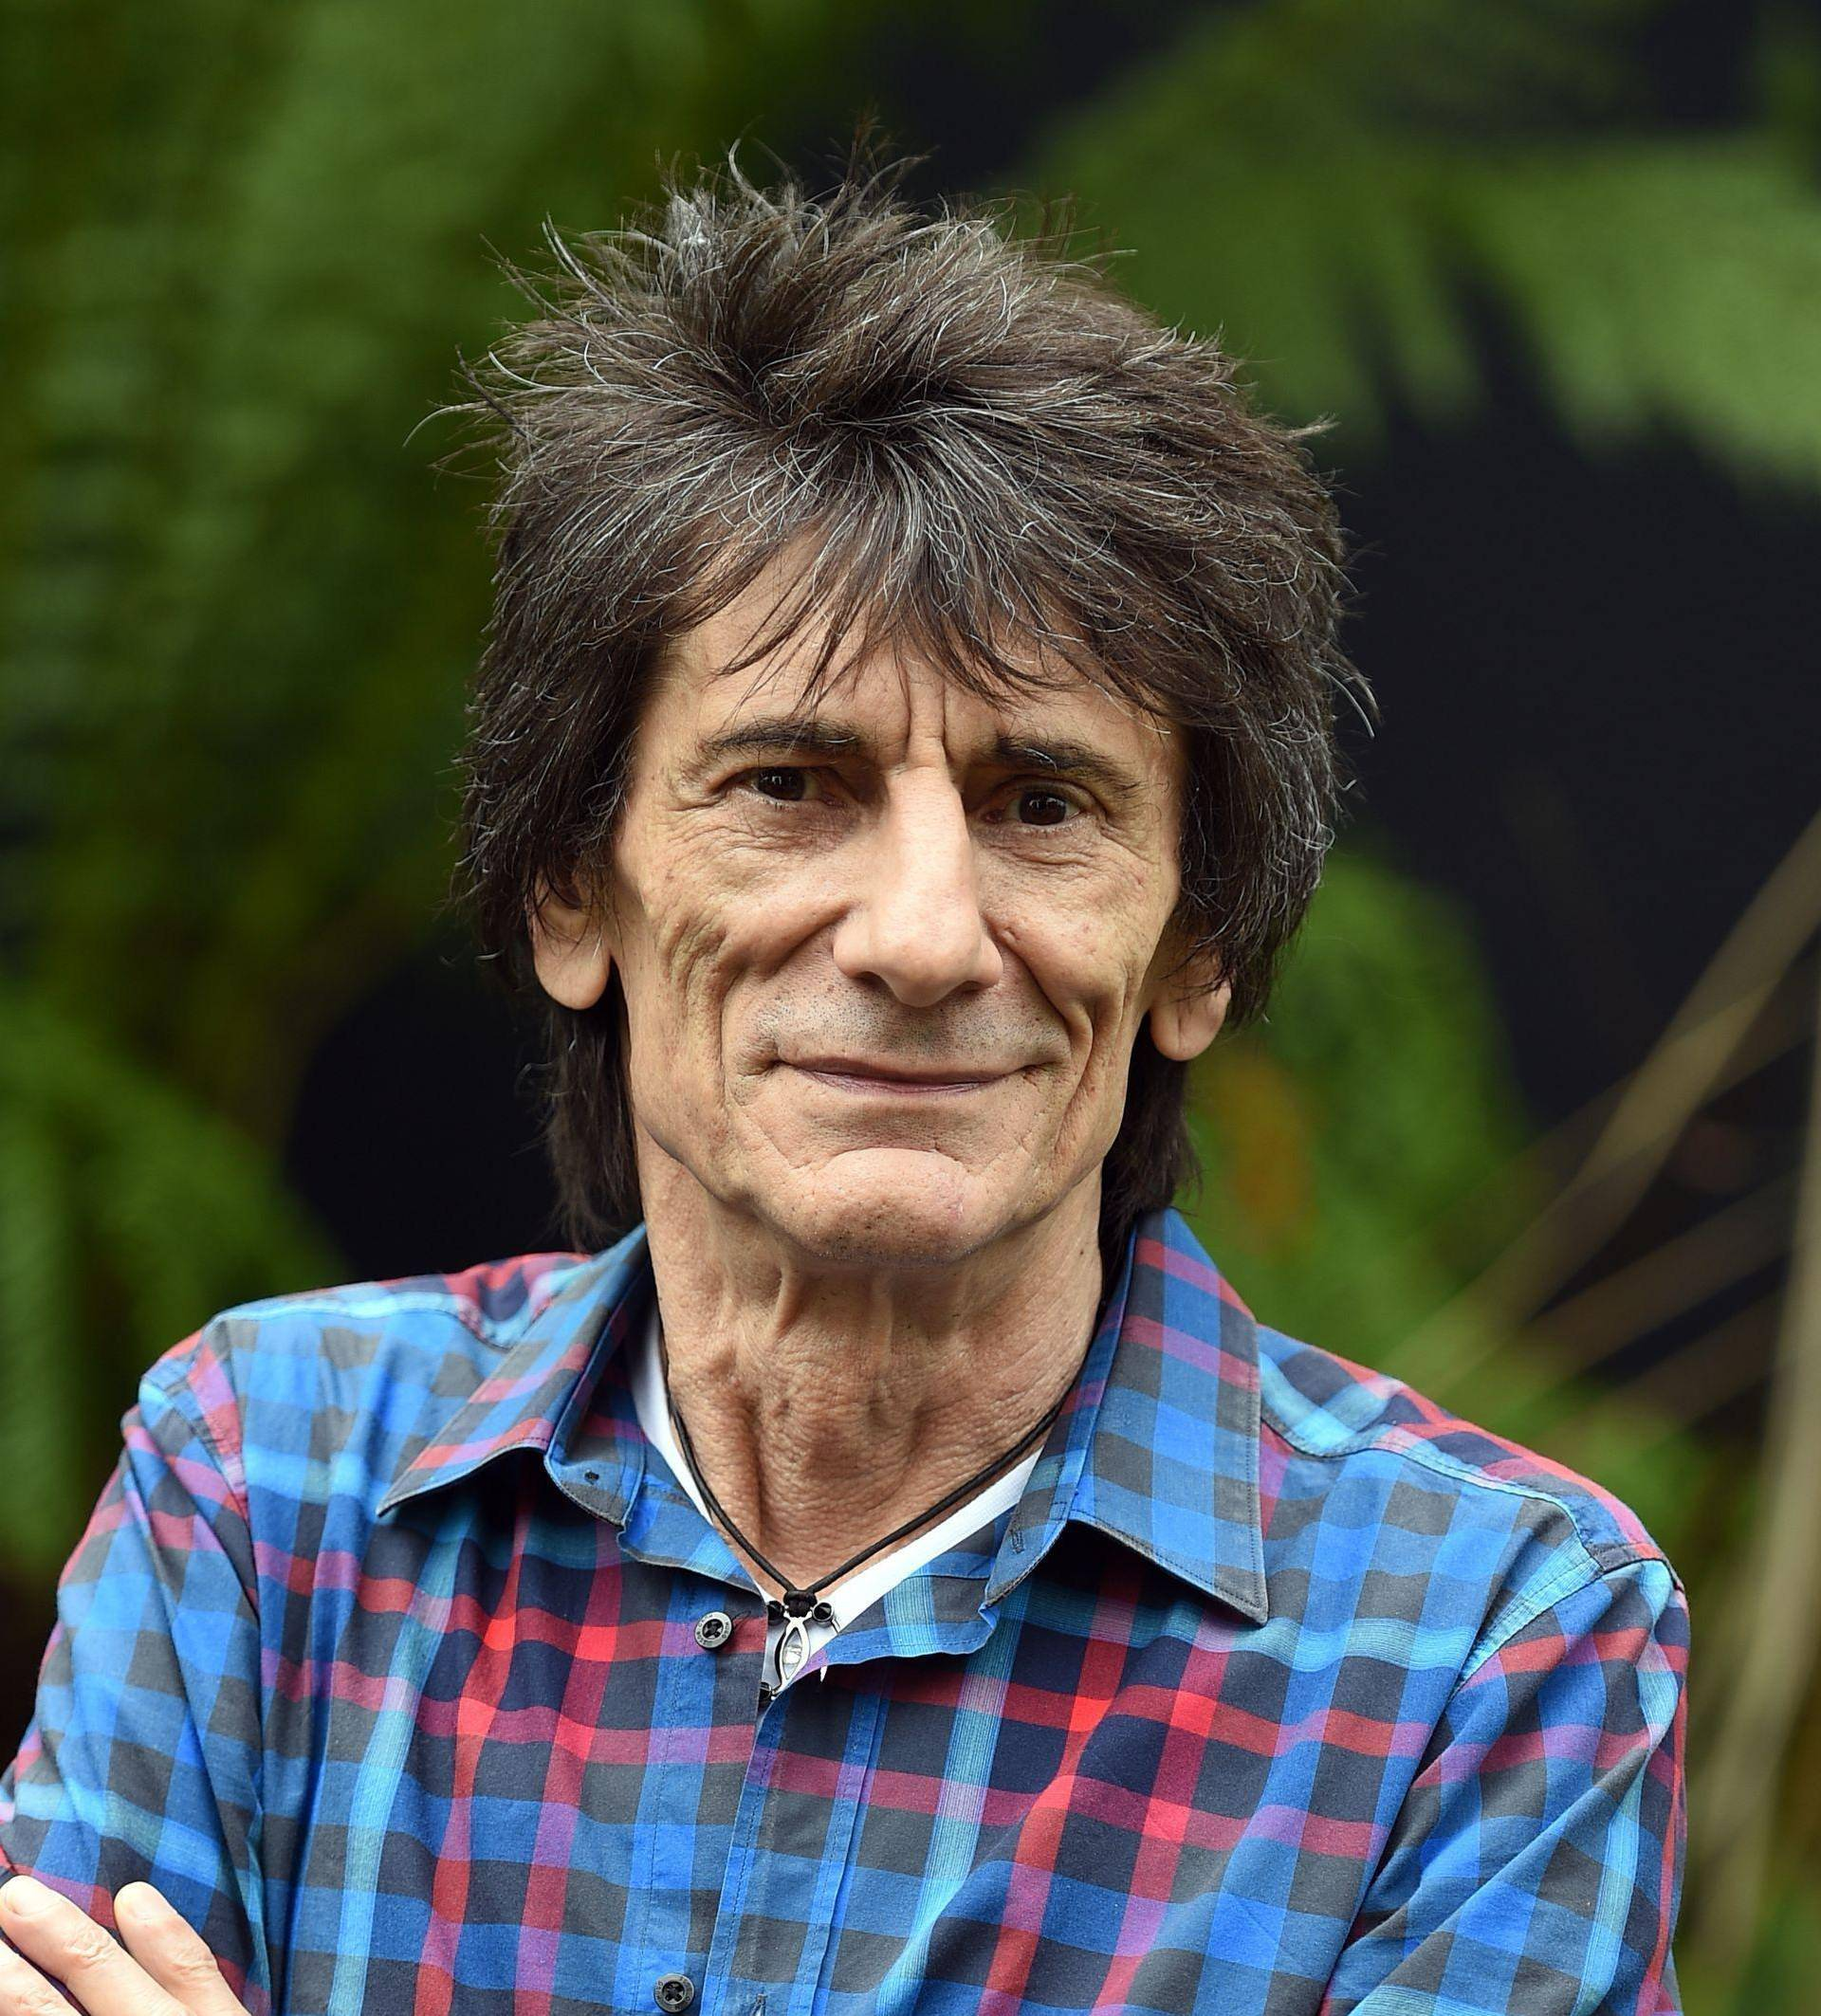 Ronnie Wood surgery